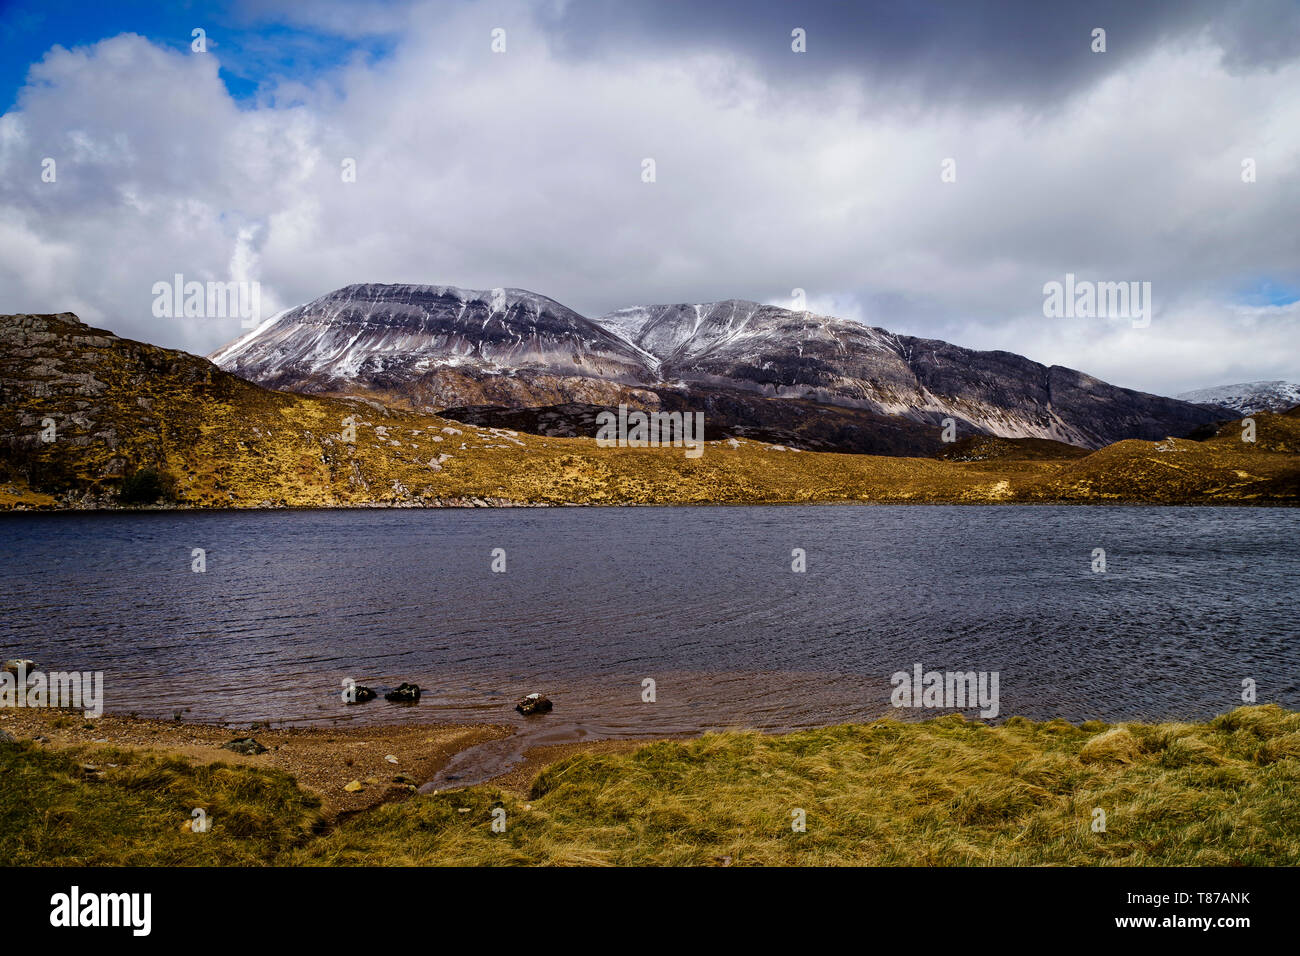 Snow-capped Arkle seen across Loch Stack on a blustery April day, Sutherland, Scottish Highlands, UK - Stock Image